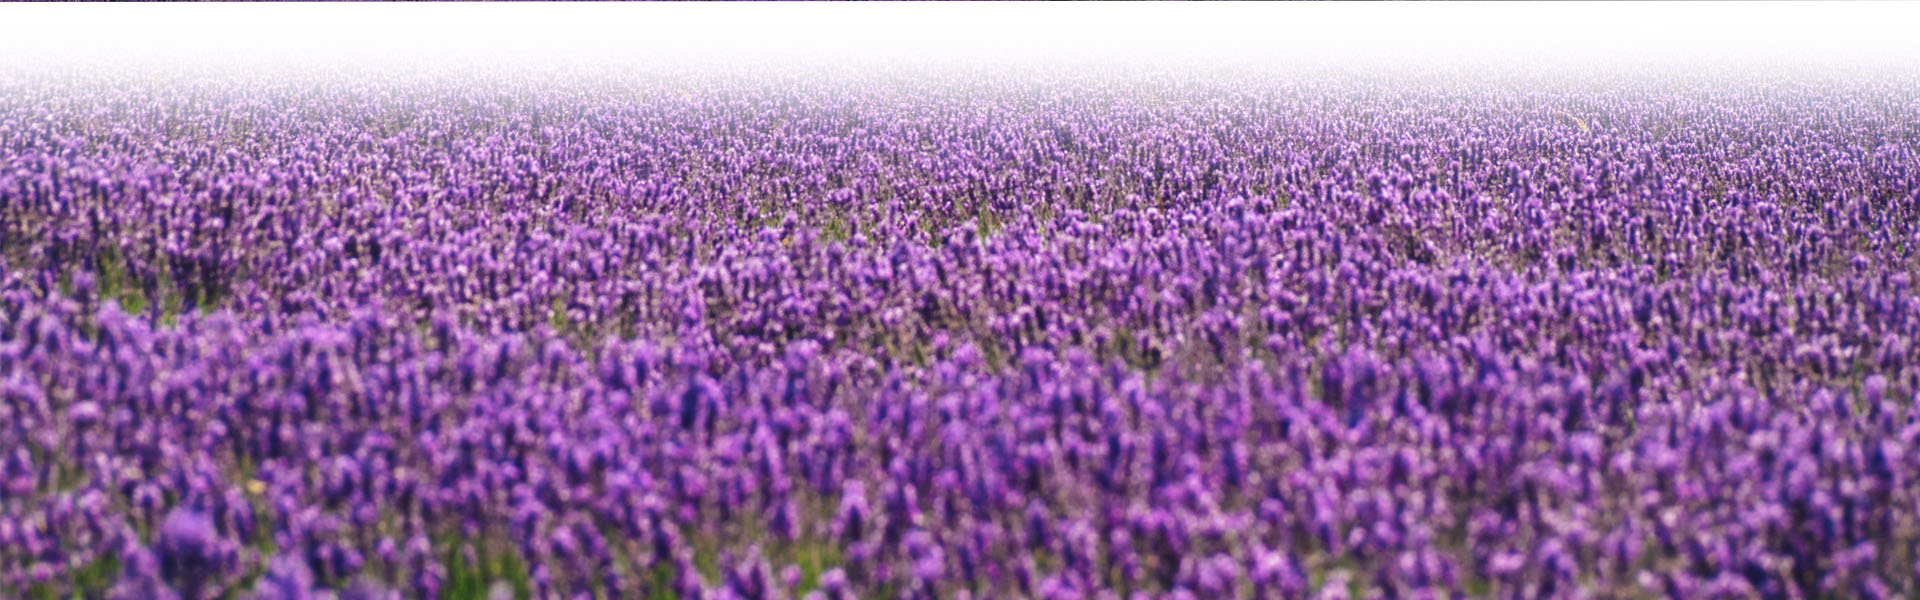 field of Lilac Flowers